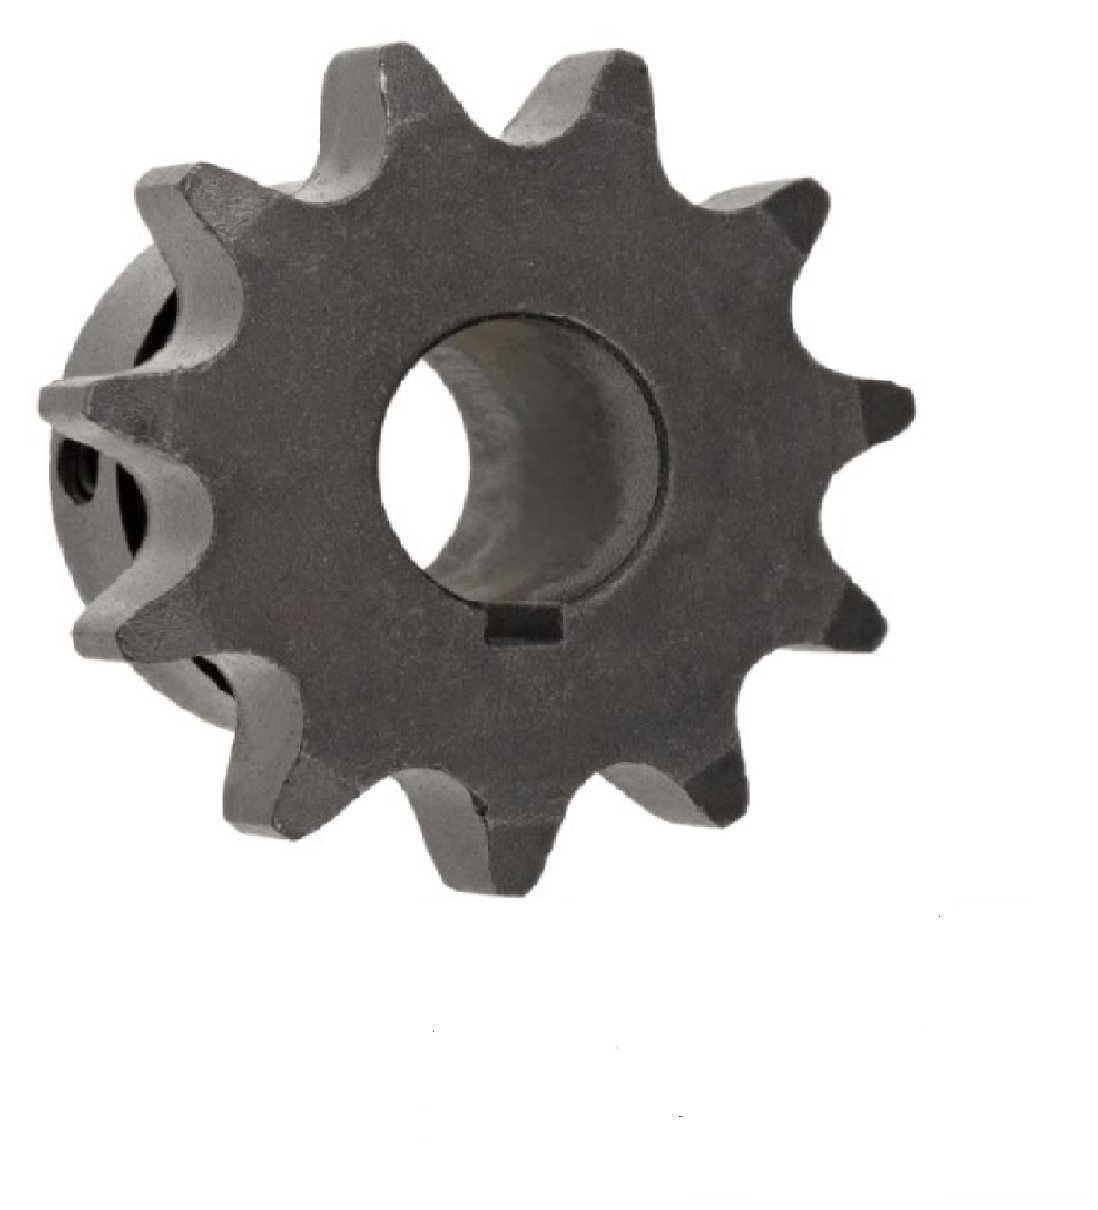 Bored-to-Size Type B Hub #50 Chain 1bore 50BS11 Roller Chain Sprocket